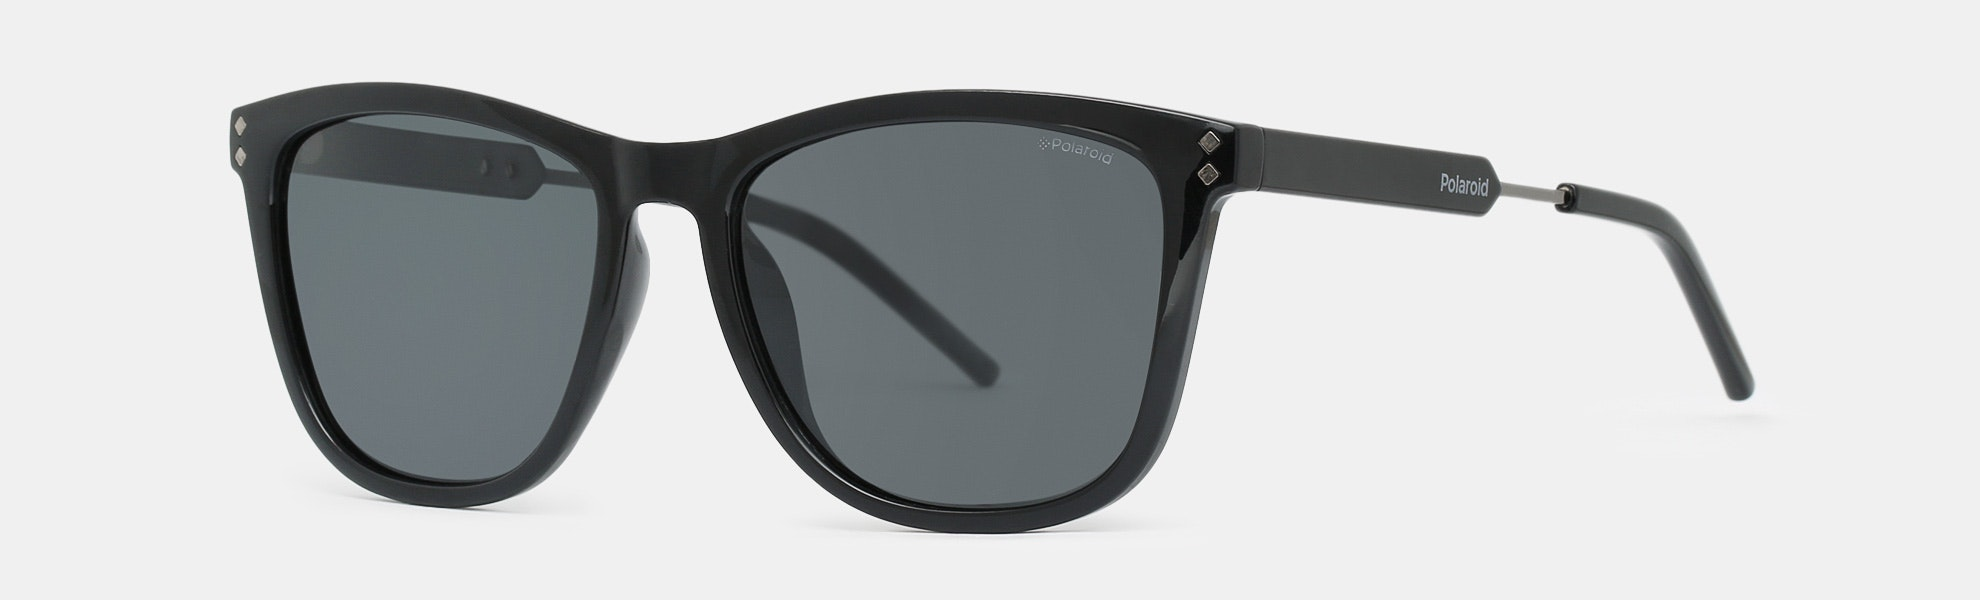 Polaroid Polarized Sunglasses